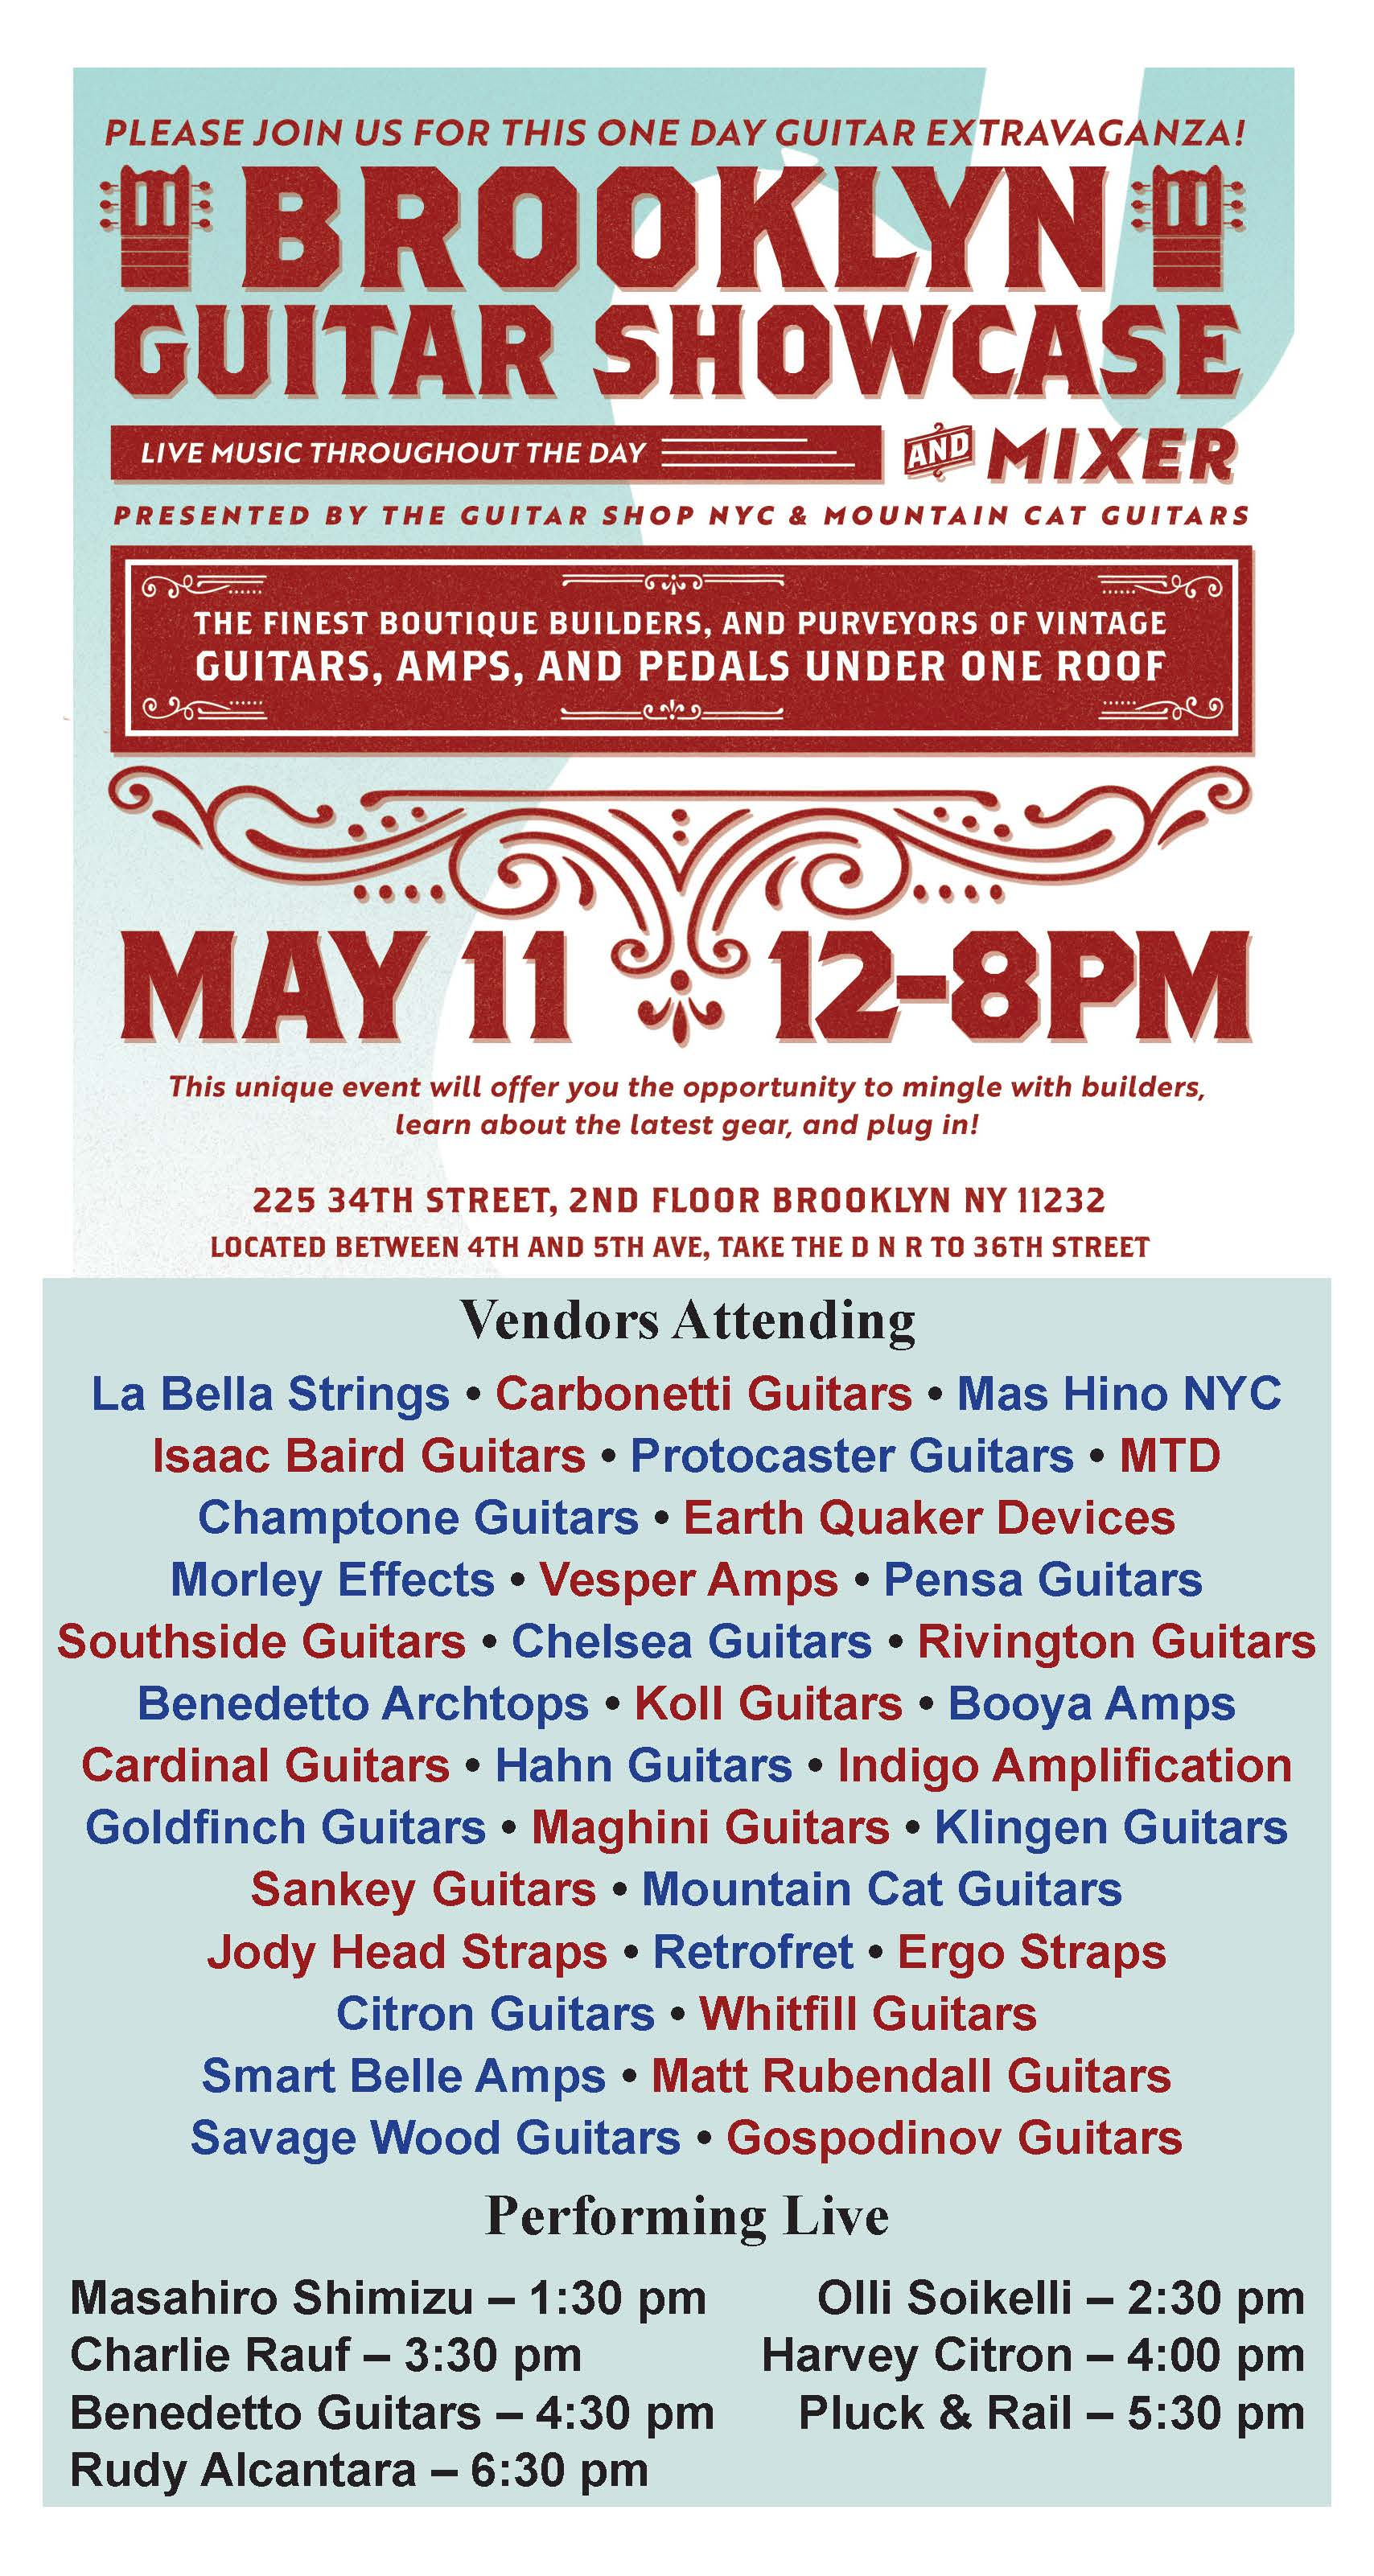 Brooklyn Guitar Showcase & Mixer poster.jpg